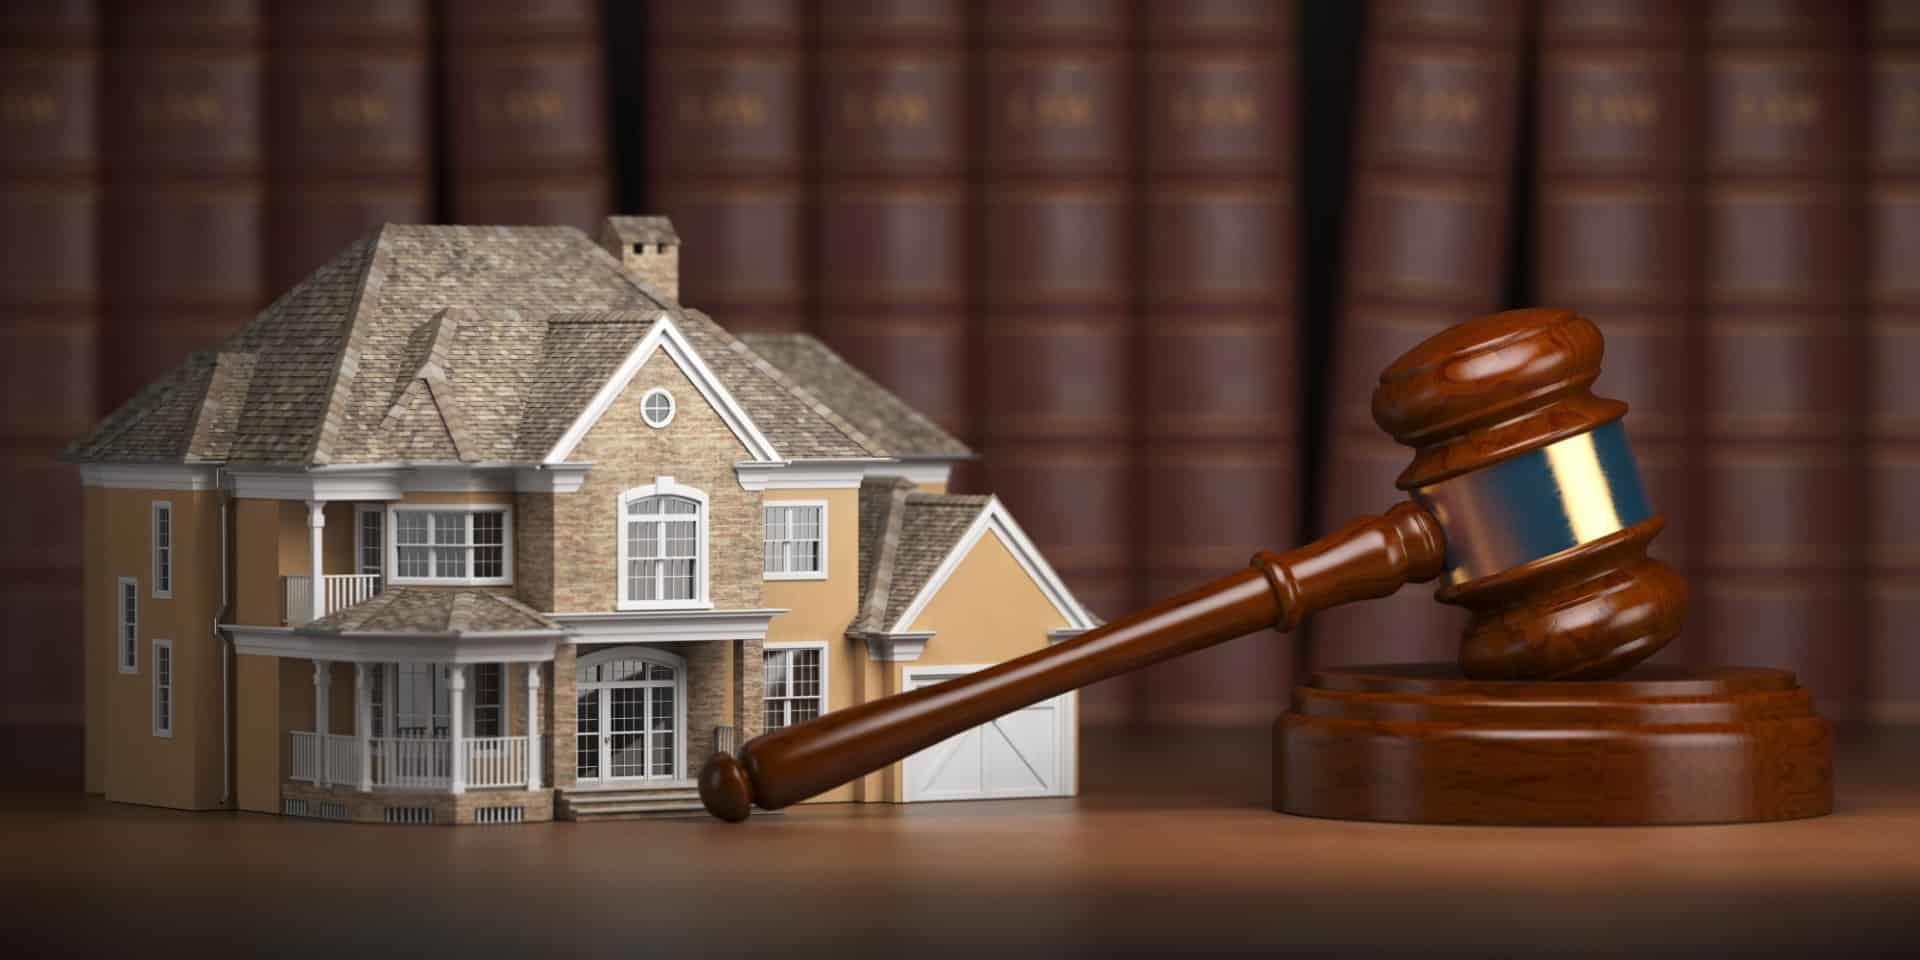 house-with-gavel-and-law-books-real-estate-law-XM3QZCA-Large